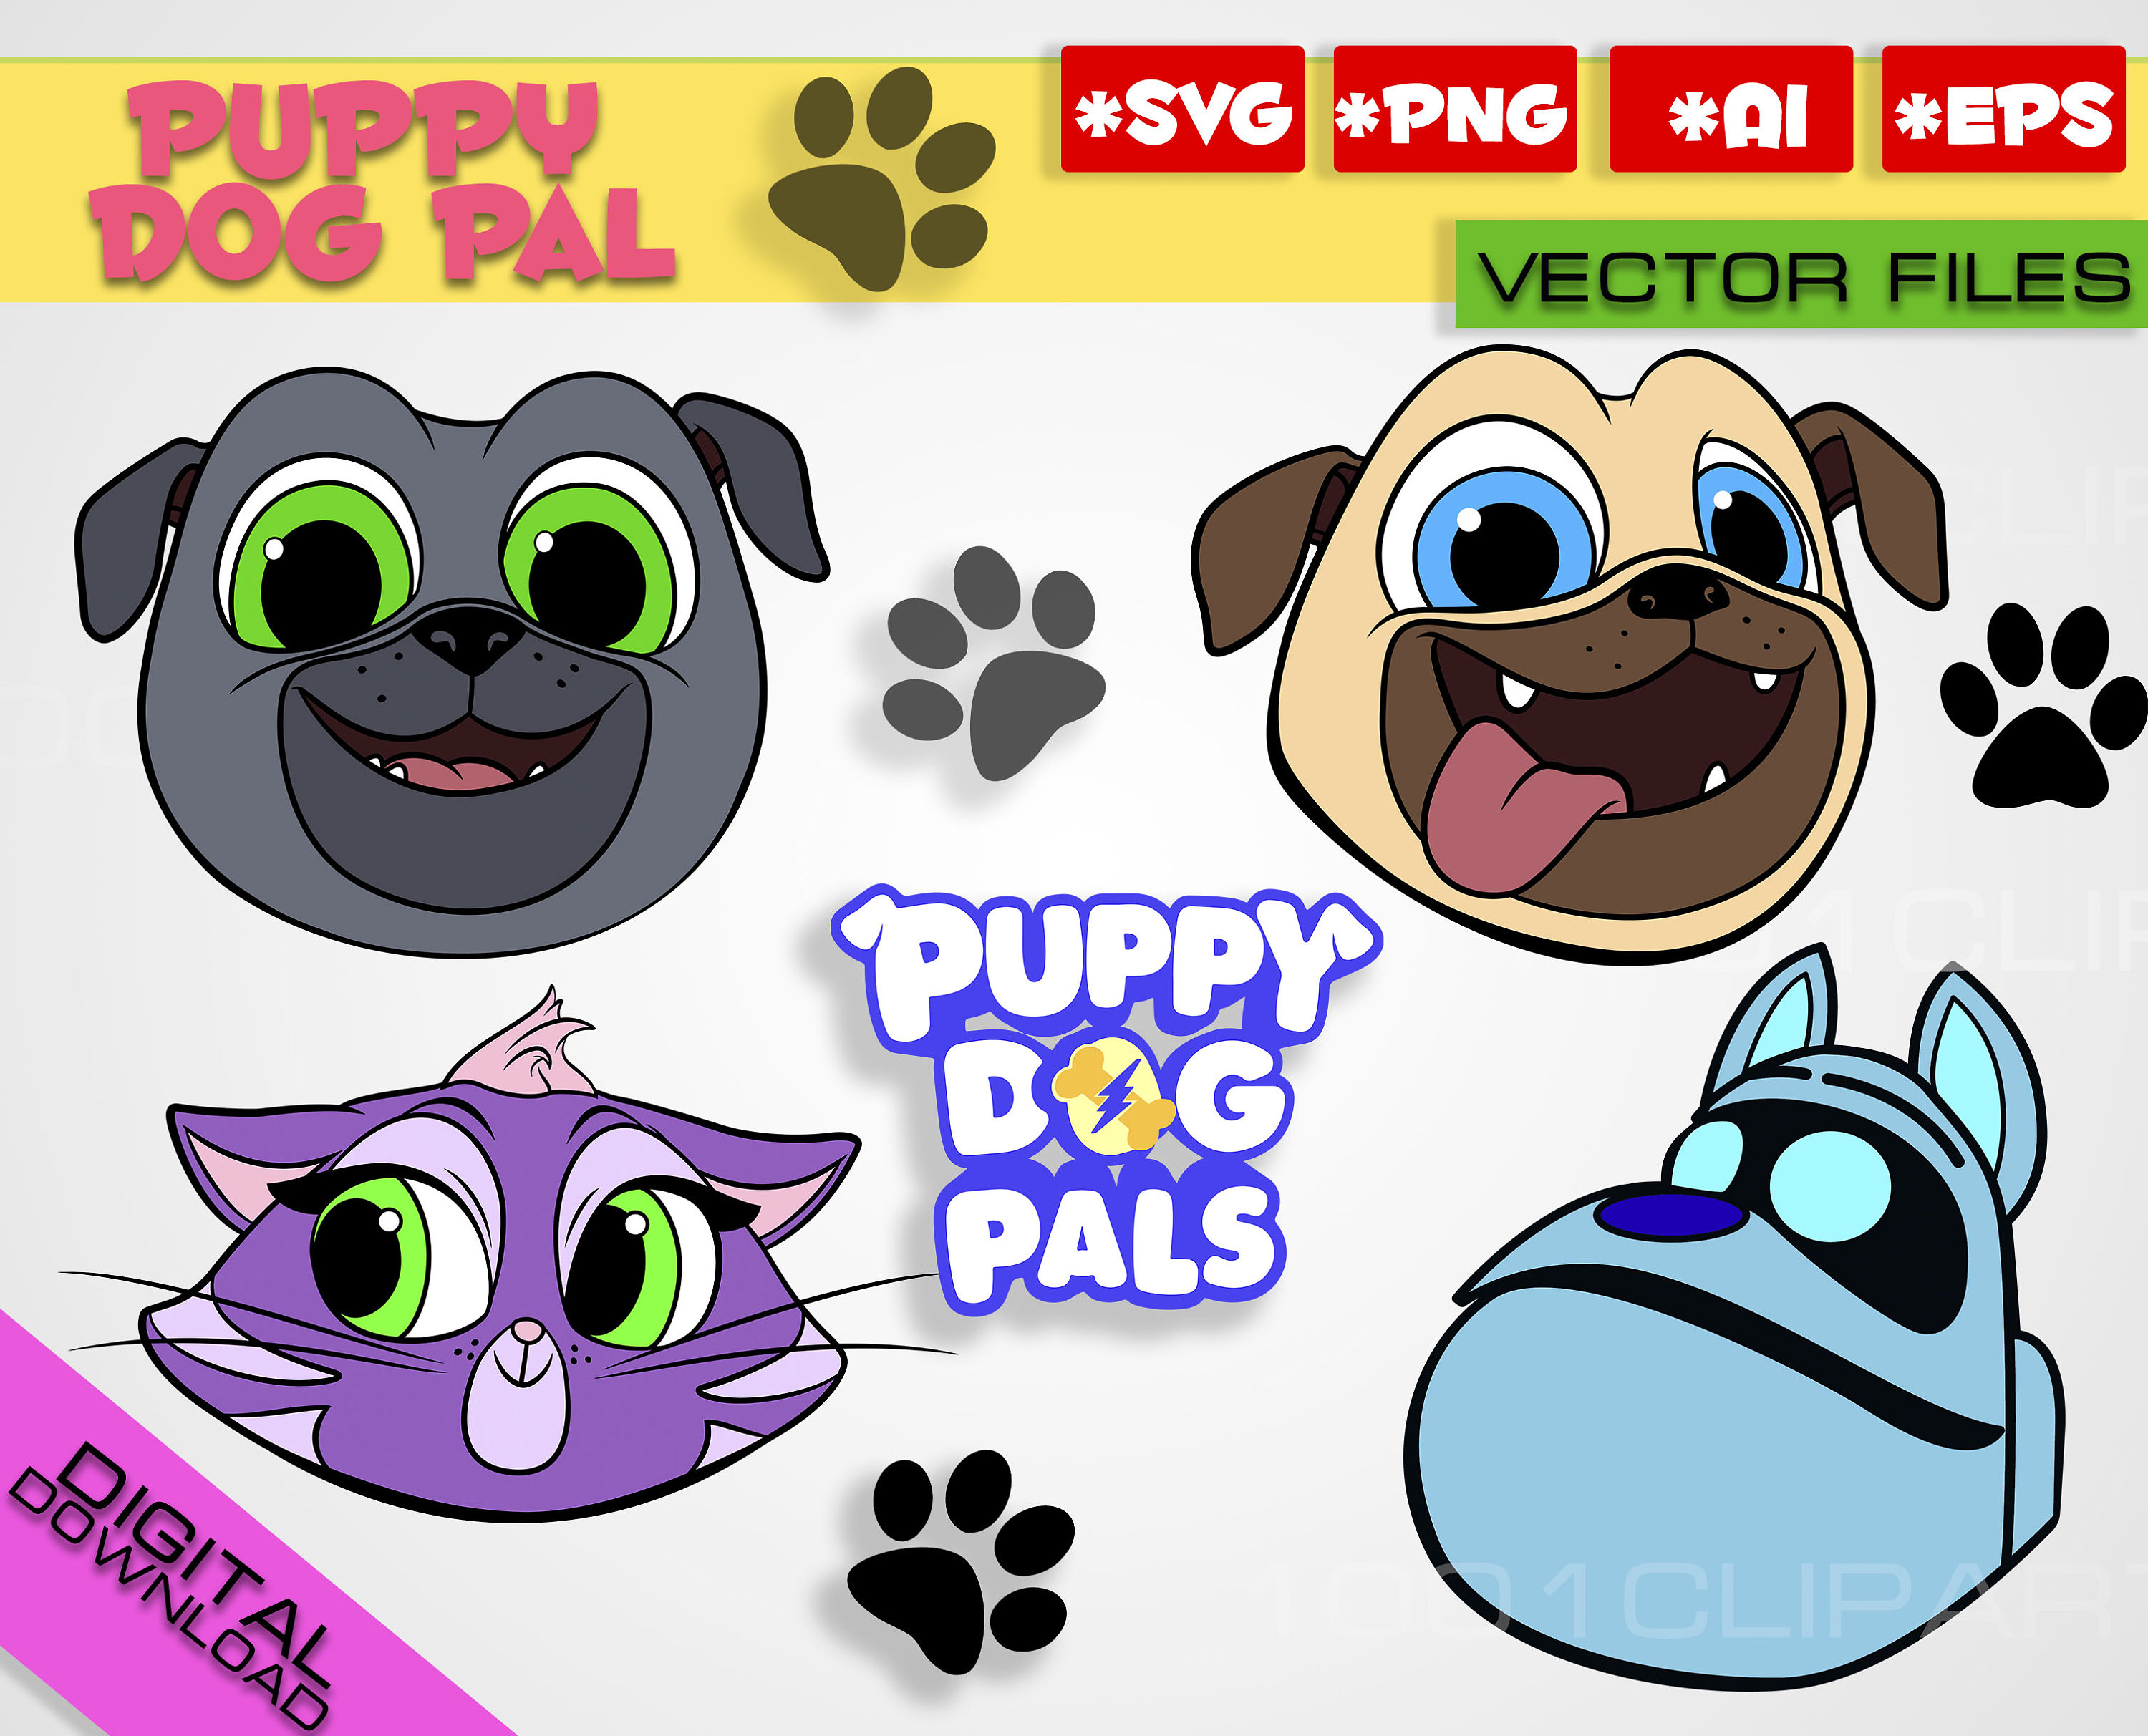 Puppy Dog Pals Svg Png Rolly Bingo Hissy A R F Clipart Puppy Etsy